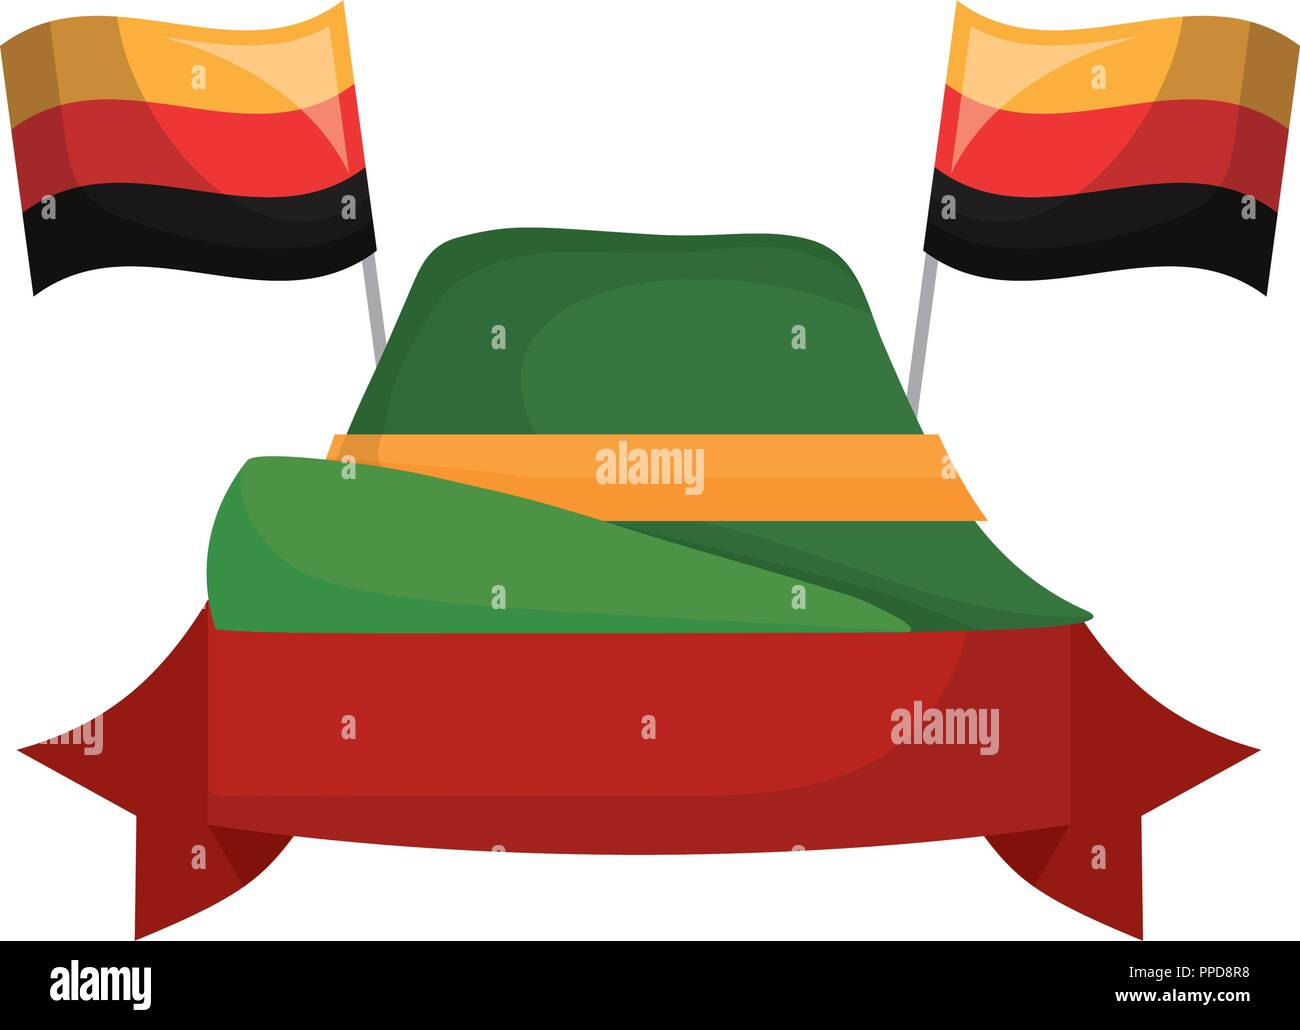 oktoberfest germnay flags hat banner vector illustration - Stock Image